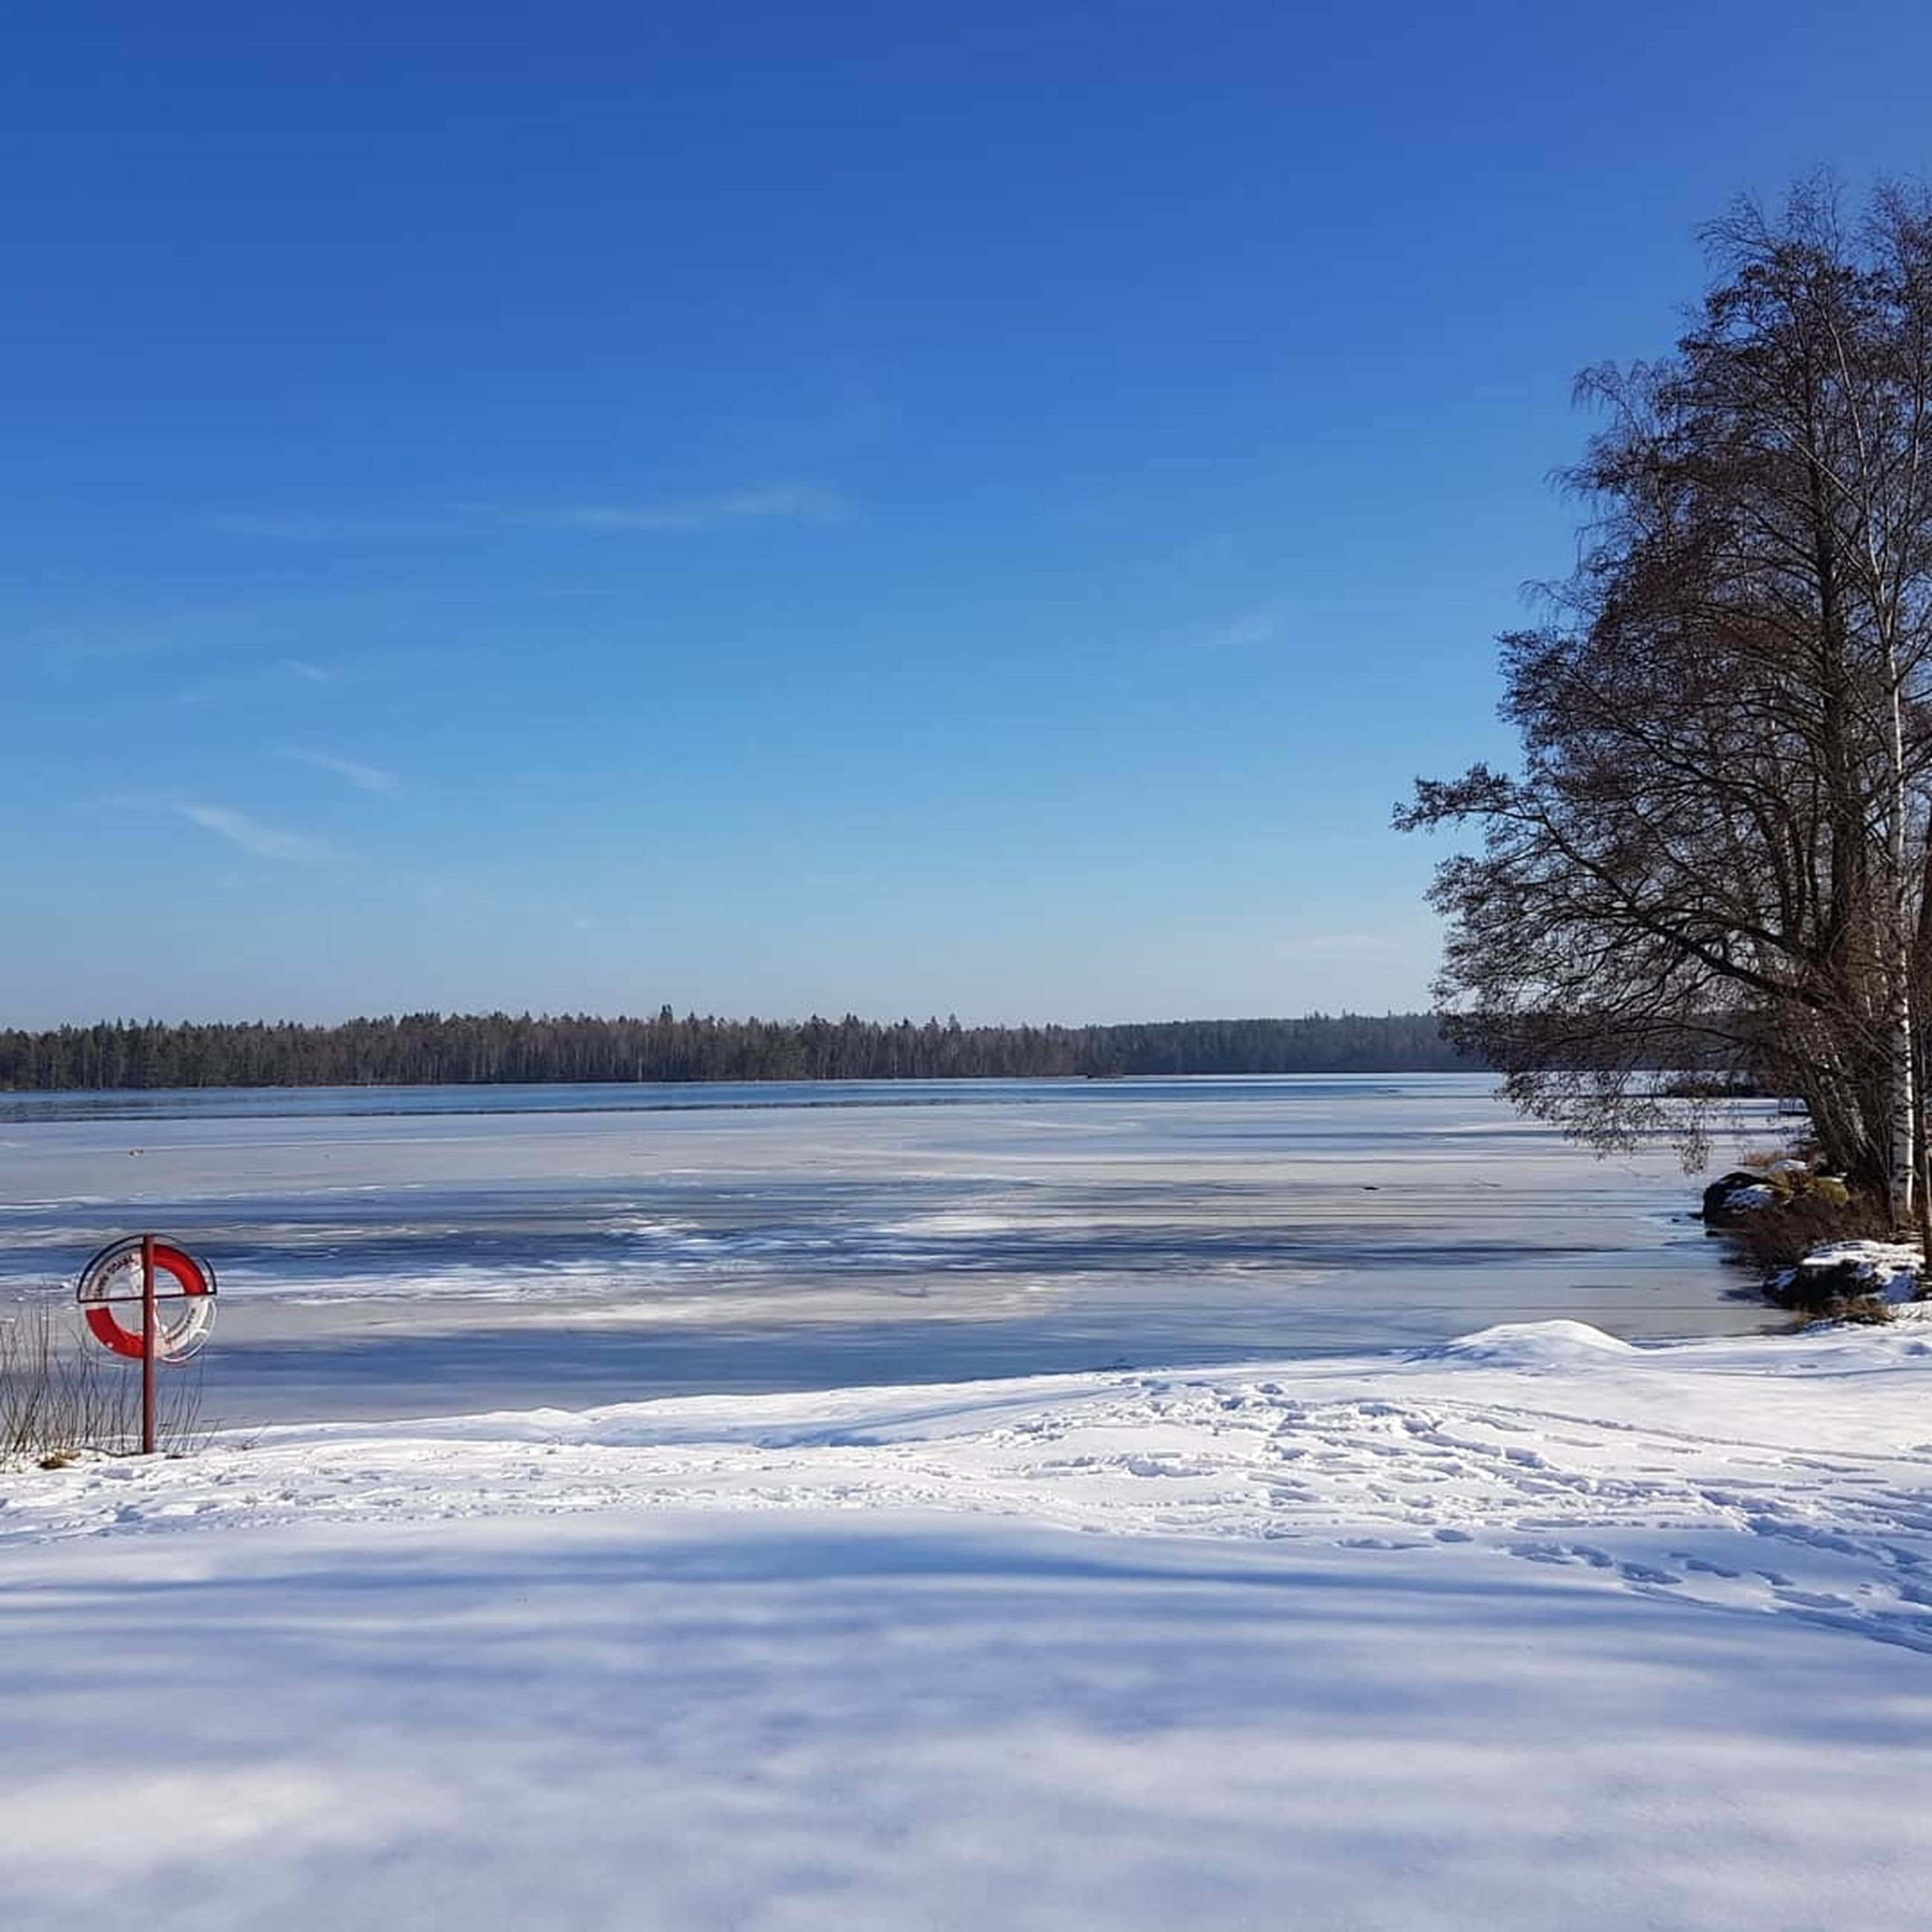 cold temperature, snow, winter, beauty in nature, scenics - nature, sky, tree, tranquility, water, tranquil scene, nature, frozen, non-urban scene, blue, plant, lake, land, day, no people, snowcapped mountain